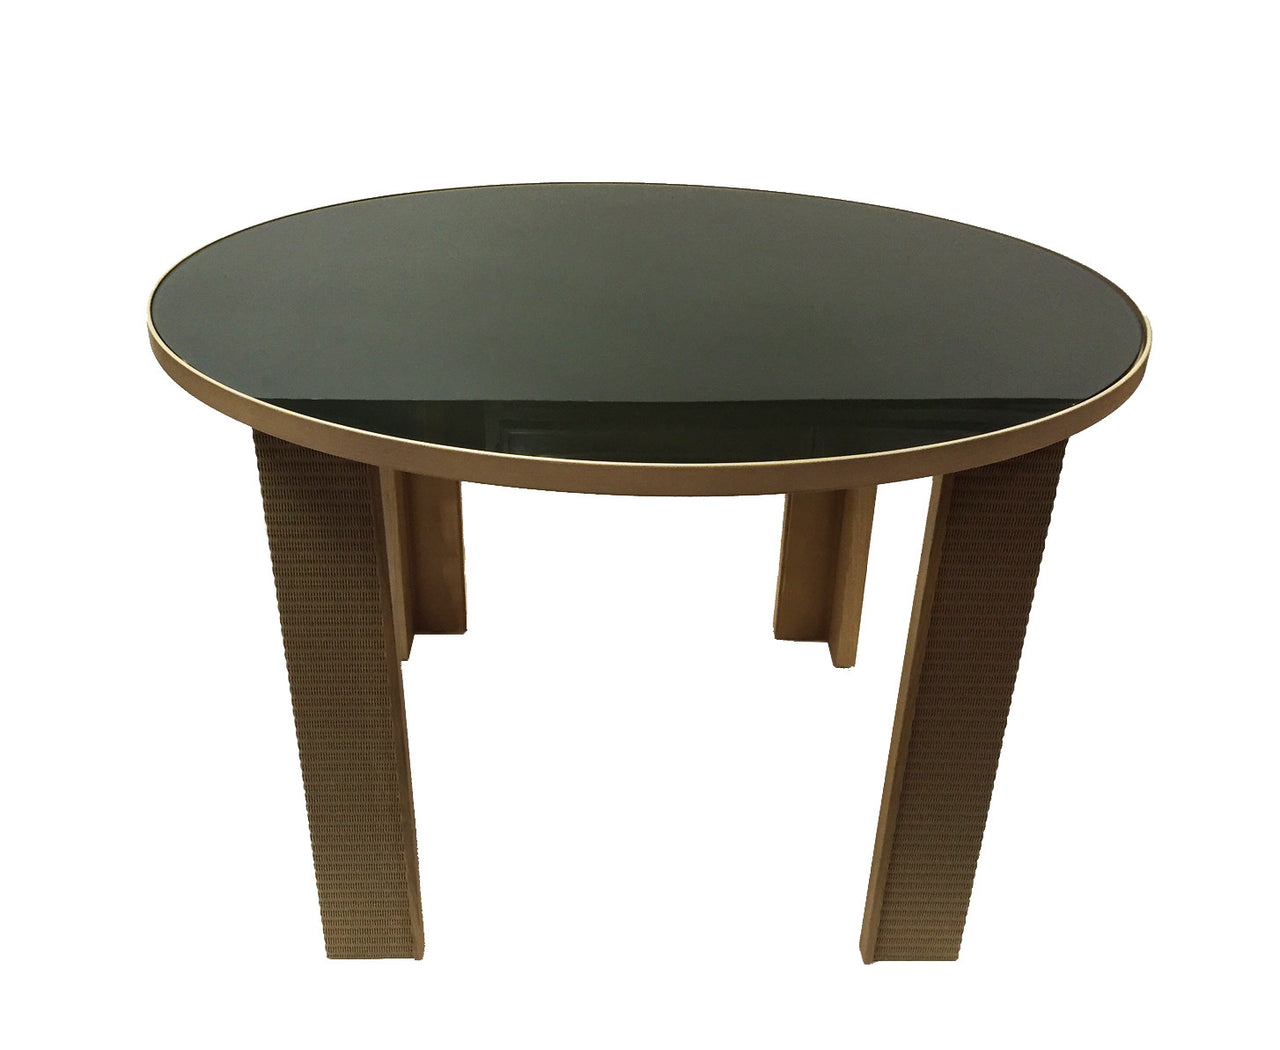 "49"" Round Dining Table With Smoked Glass Top - touchGOODS"